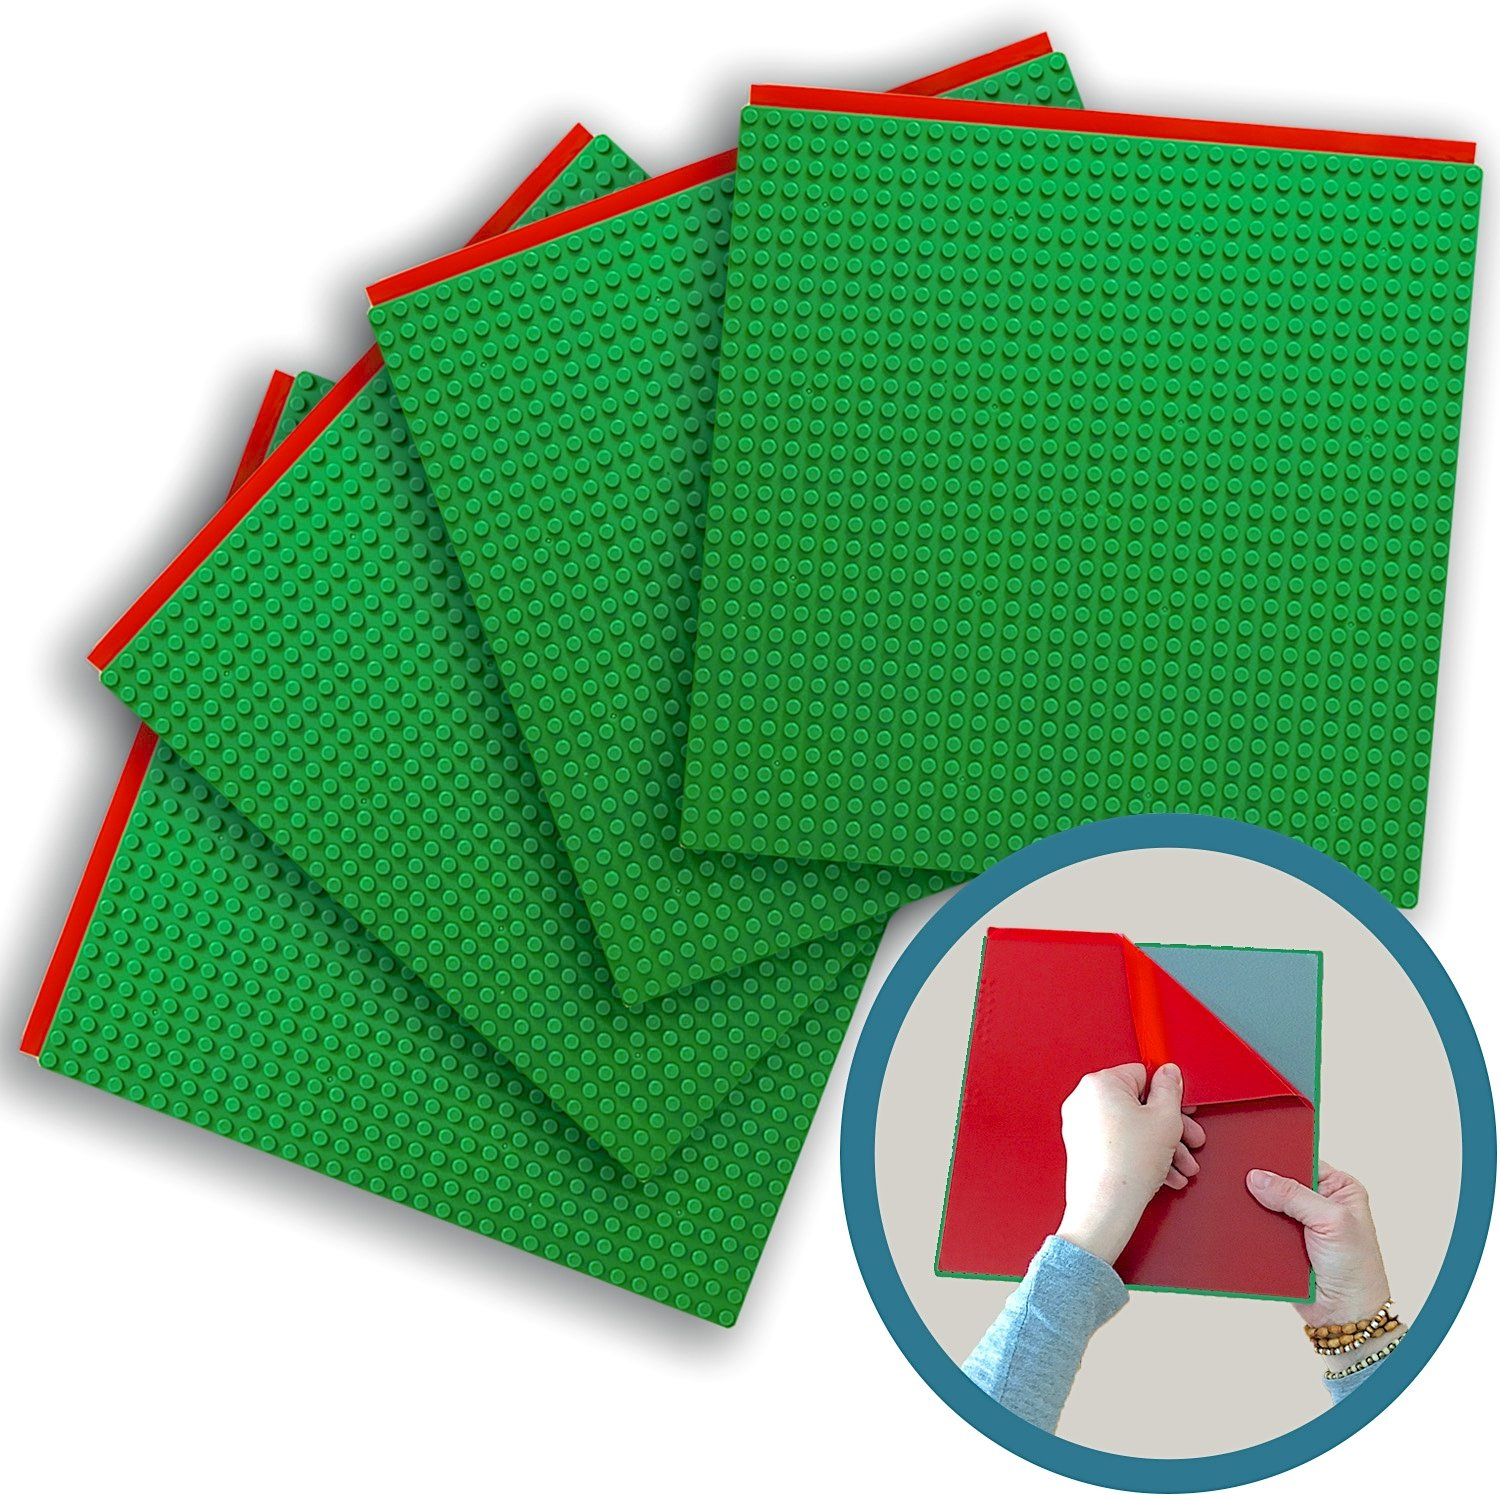 Peel-and-stick Baseplates - Self Adhesive Building Brick Plates - Compatible With All Major Brands - 4 Pack - Green - 10 Inch X 10 Inch - By Creative Qt